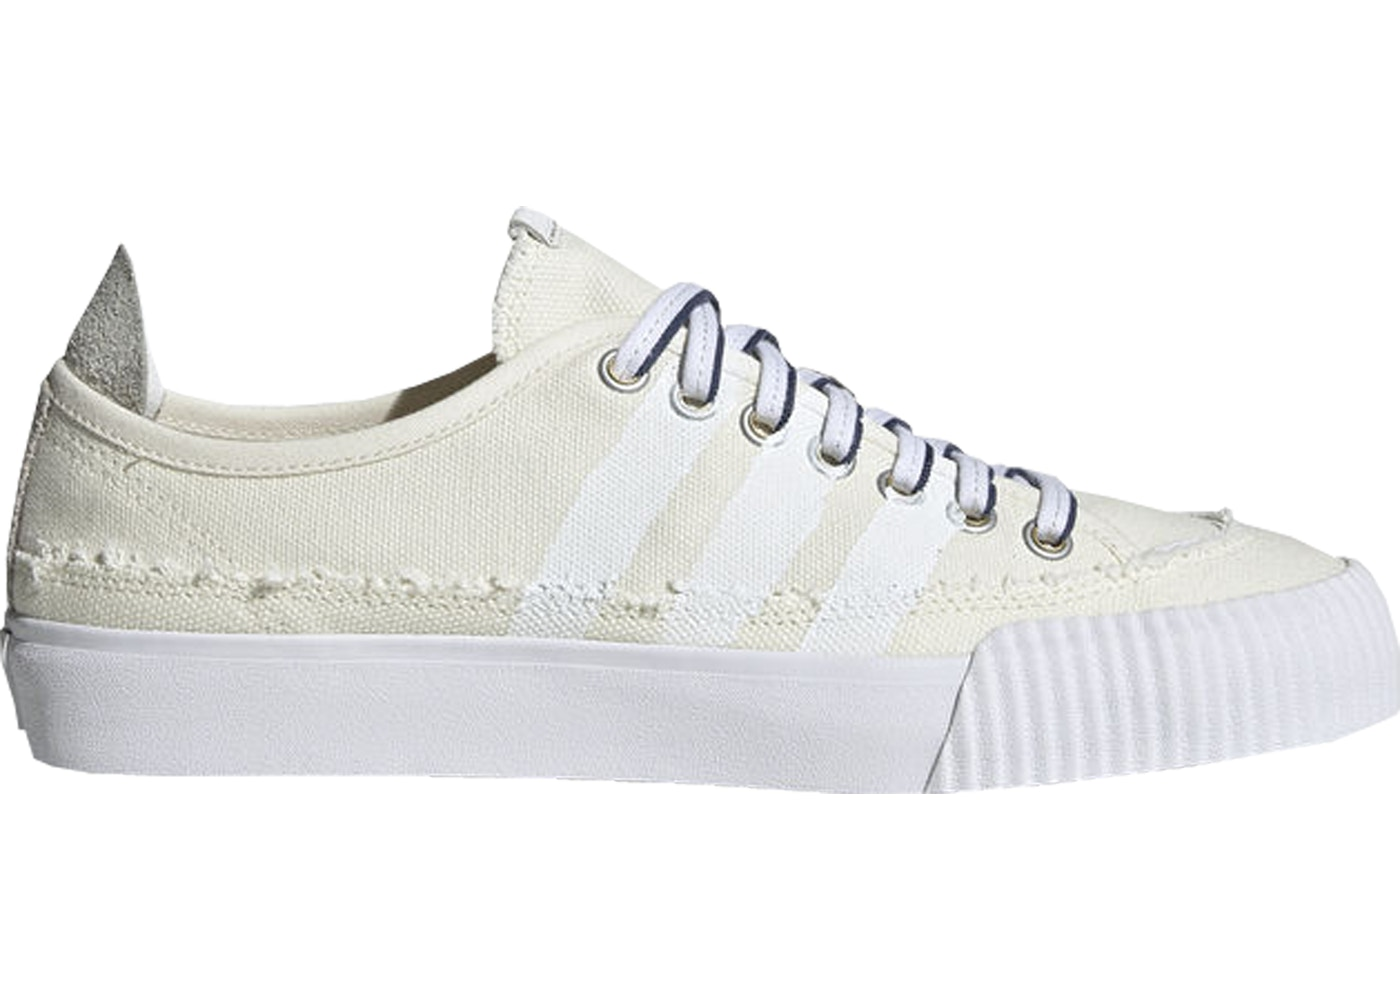 5d0cd715def31 adidas Nizza Donald Glover Off White